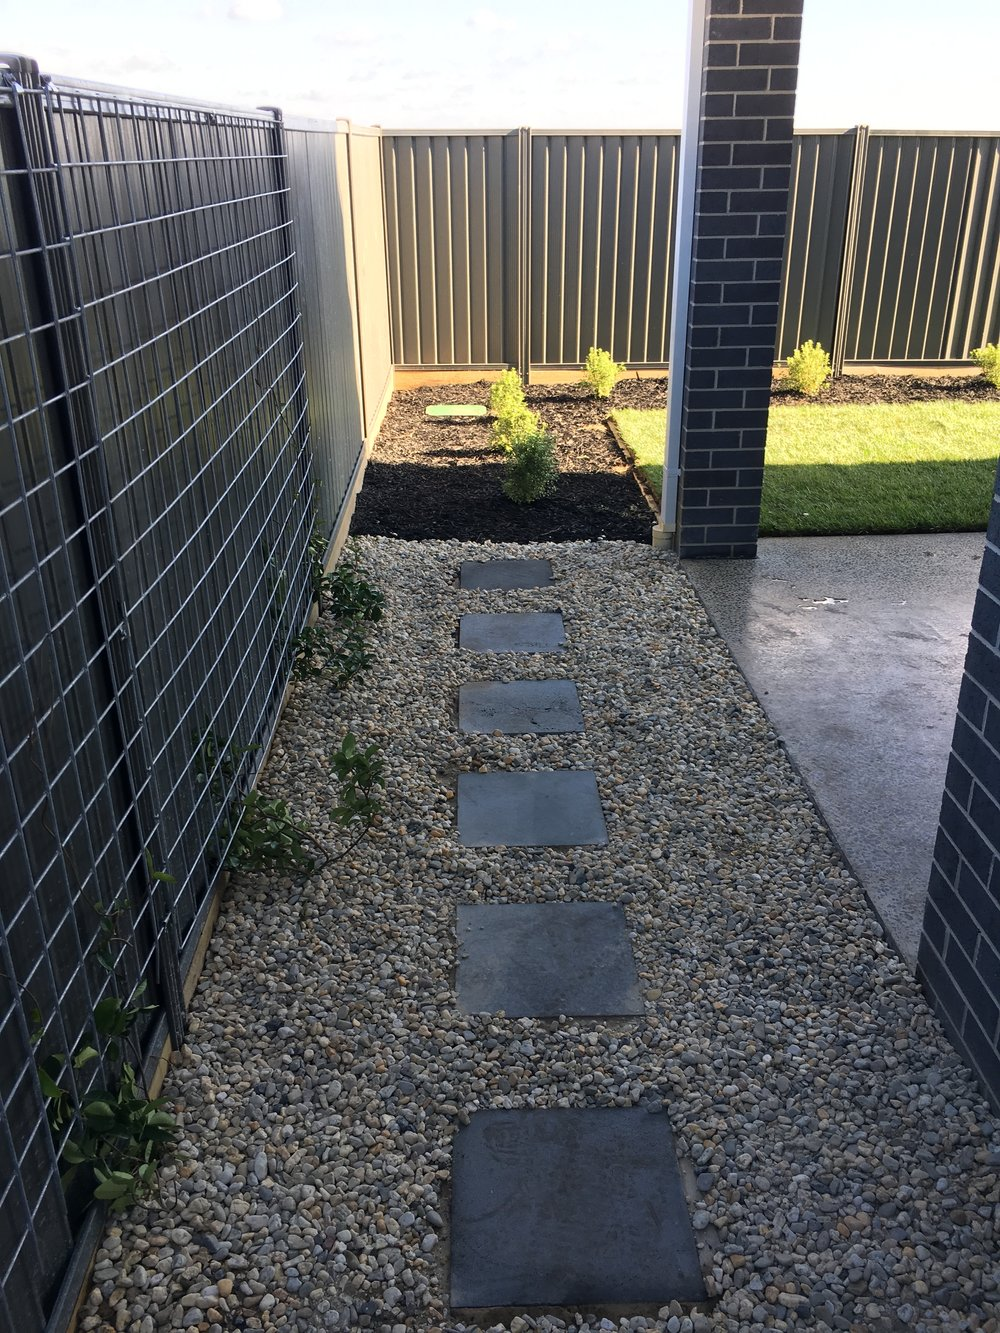 Pebble mulch with stepping pavers and wire for climbing plants on fence